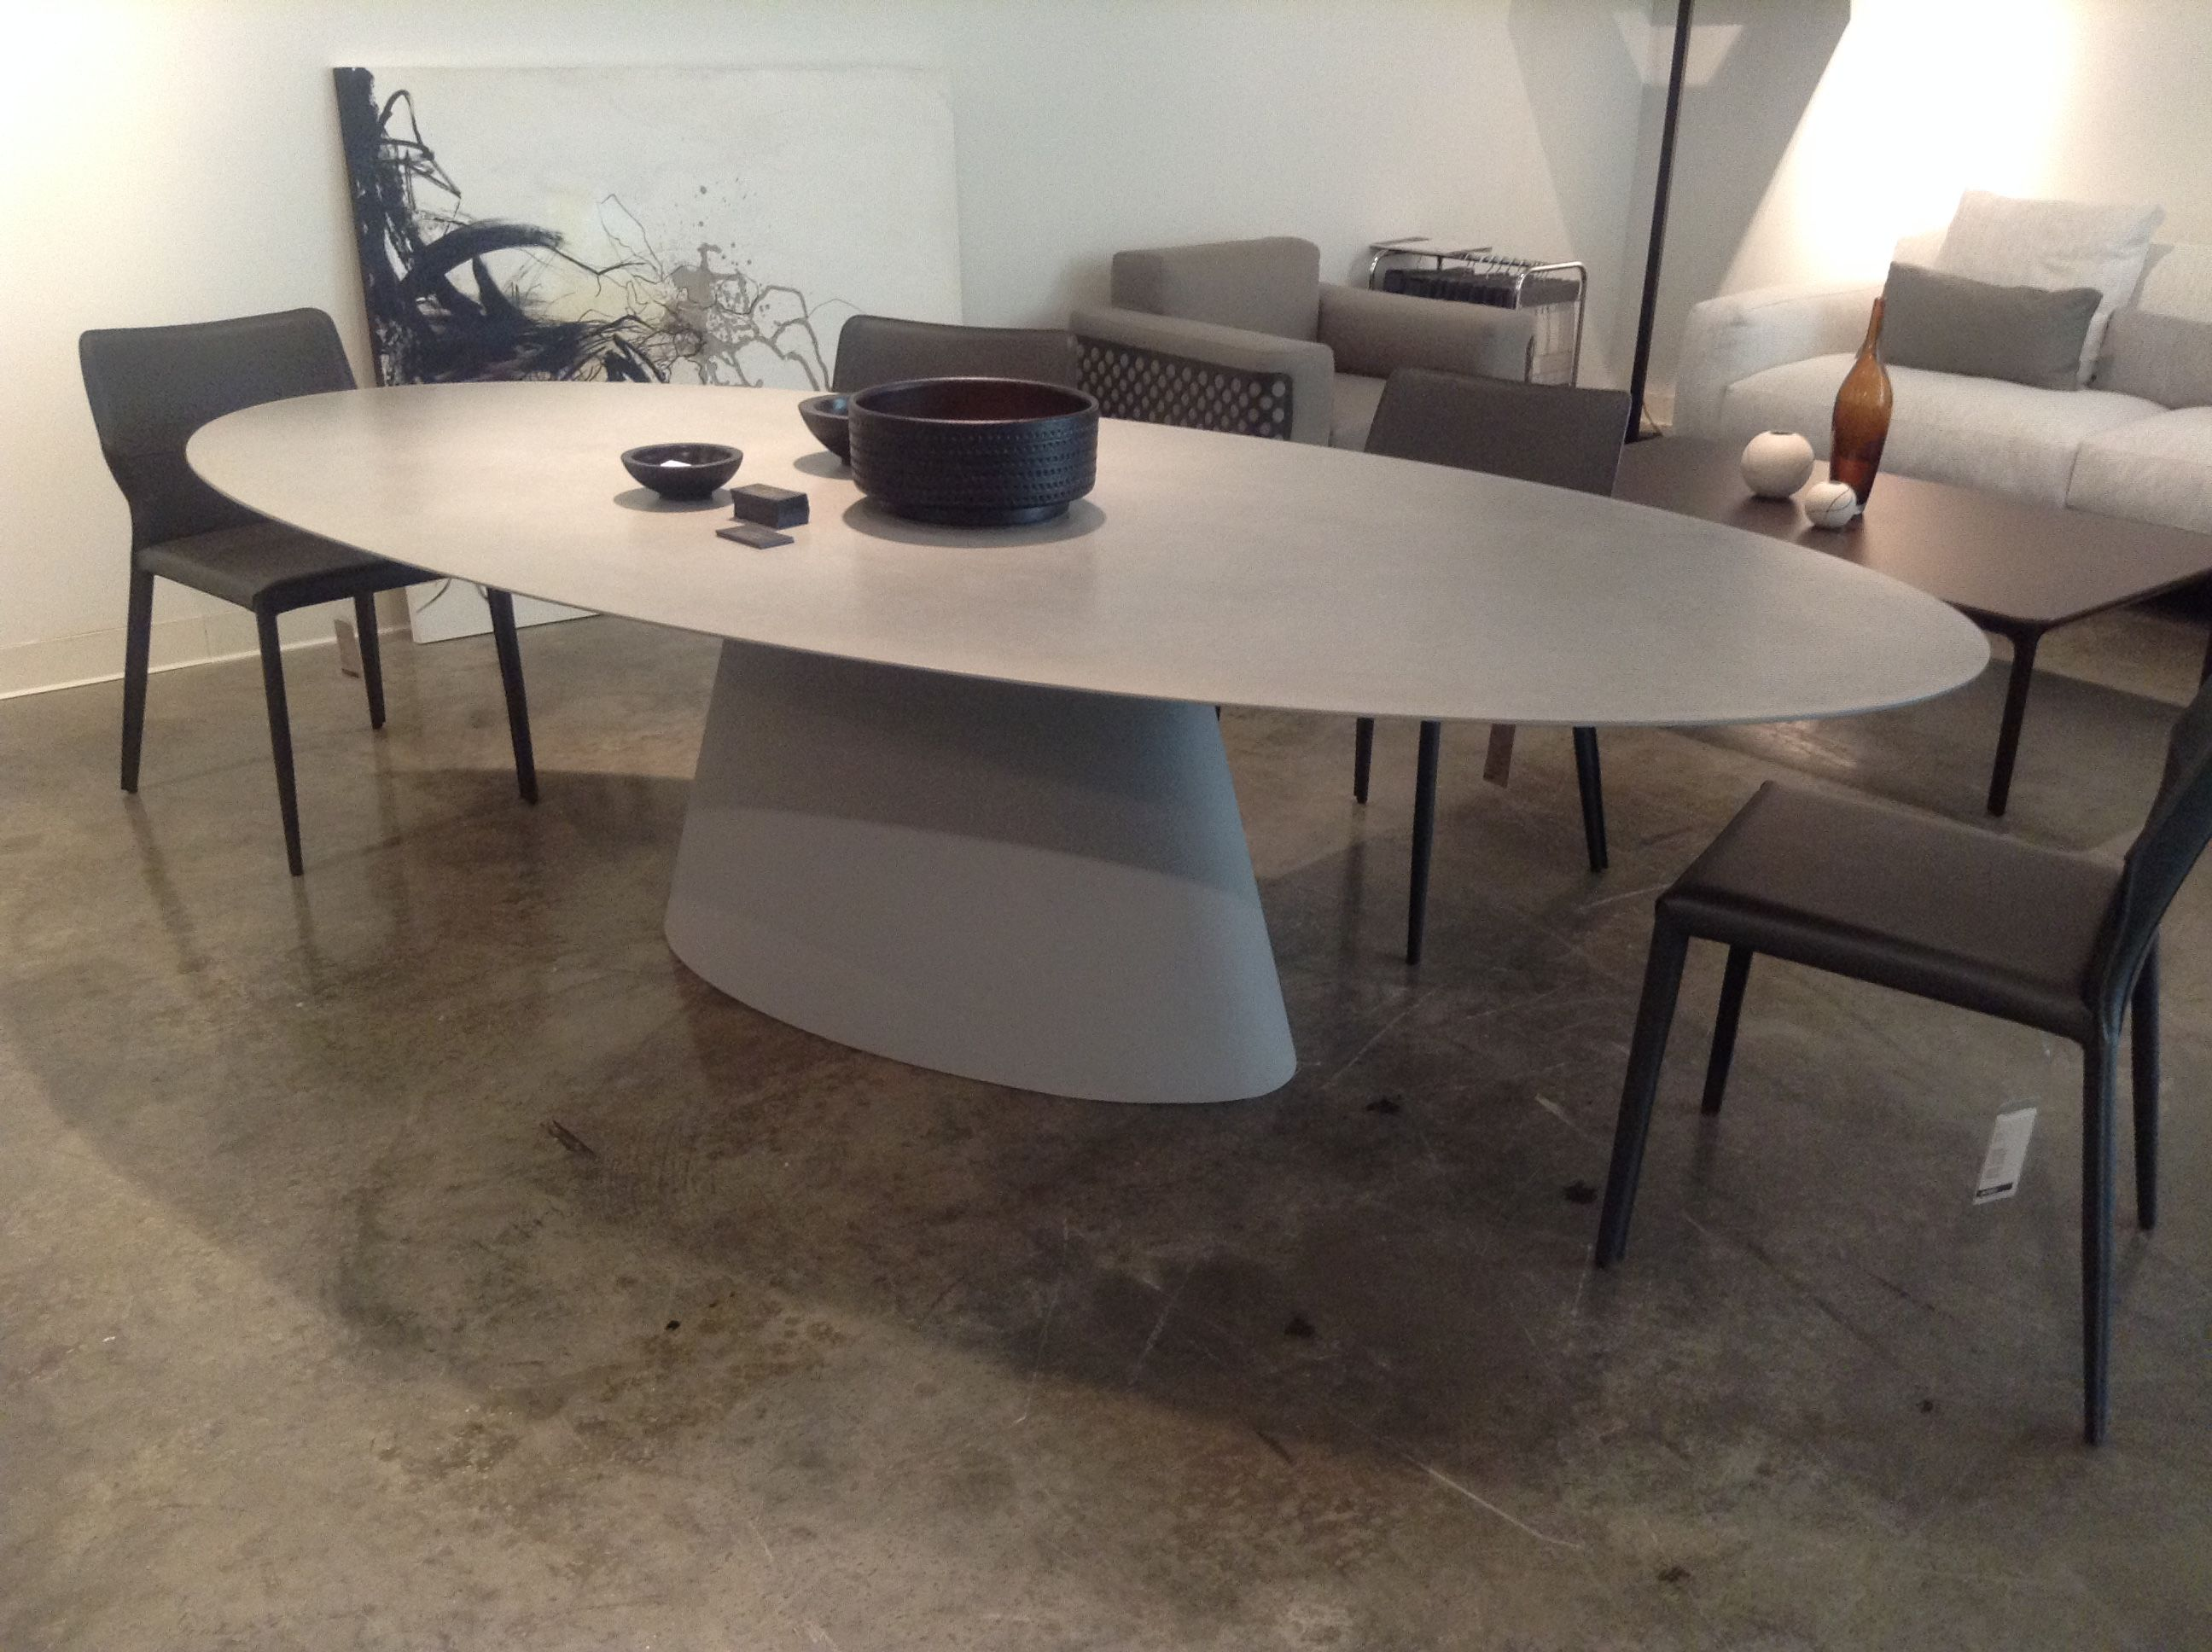 """The """"Halley"""" table by Airnova in showroom 301 at #220Elm. Table top is  featured in a cement finish. #HPMKT   Hpmkt, Table, Table top"""